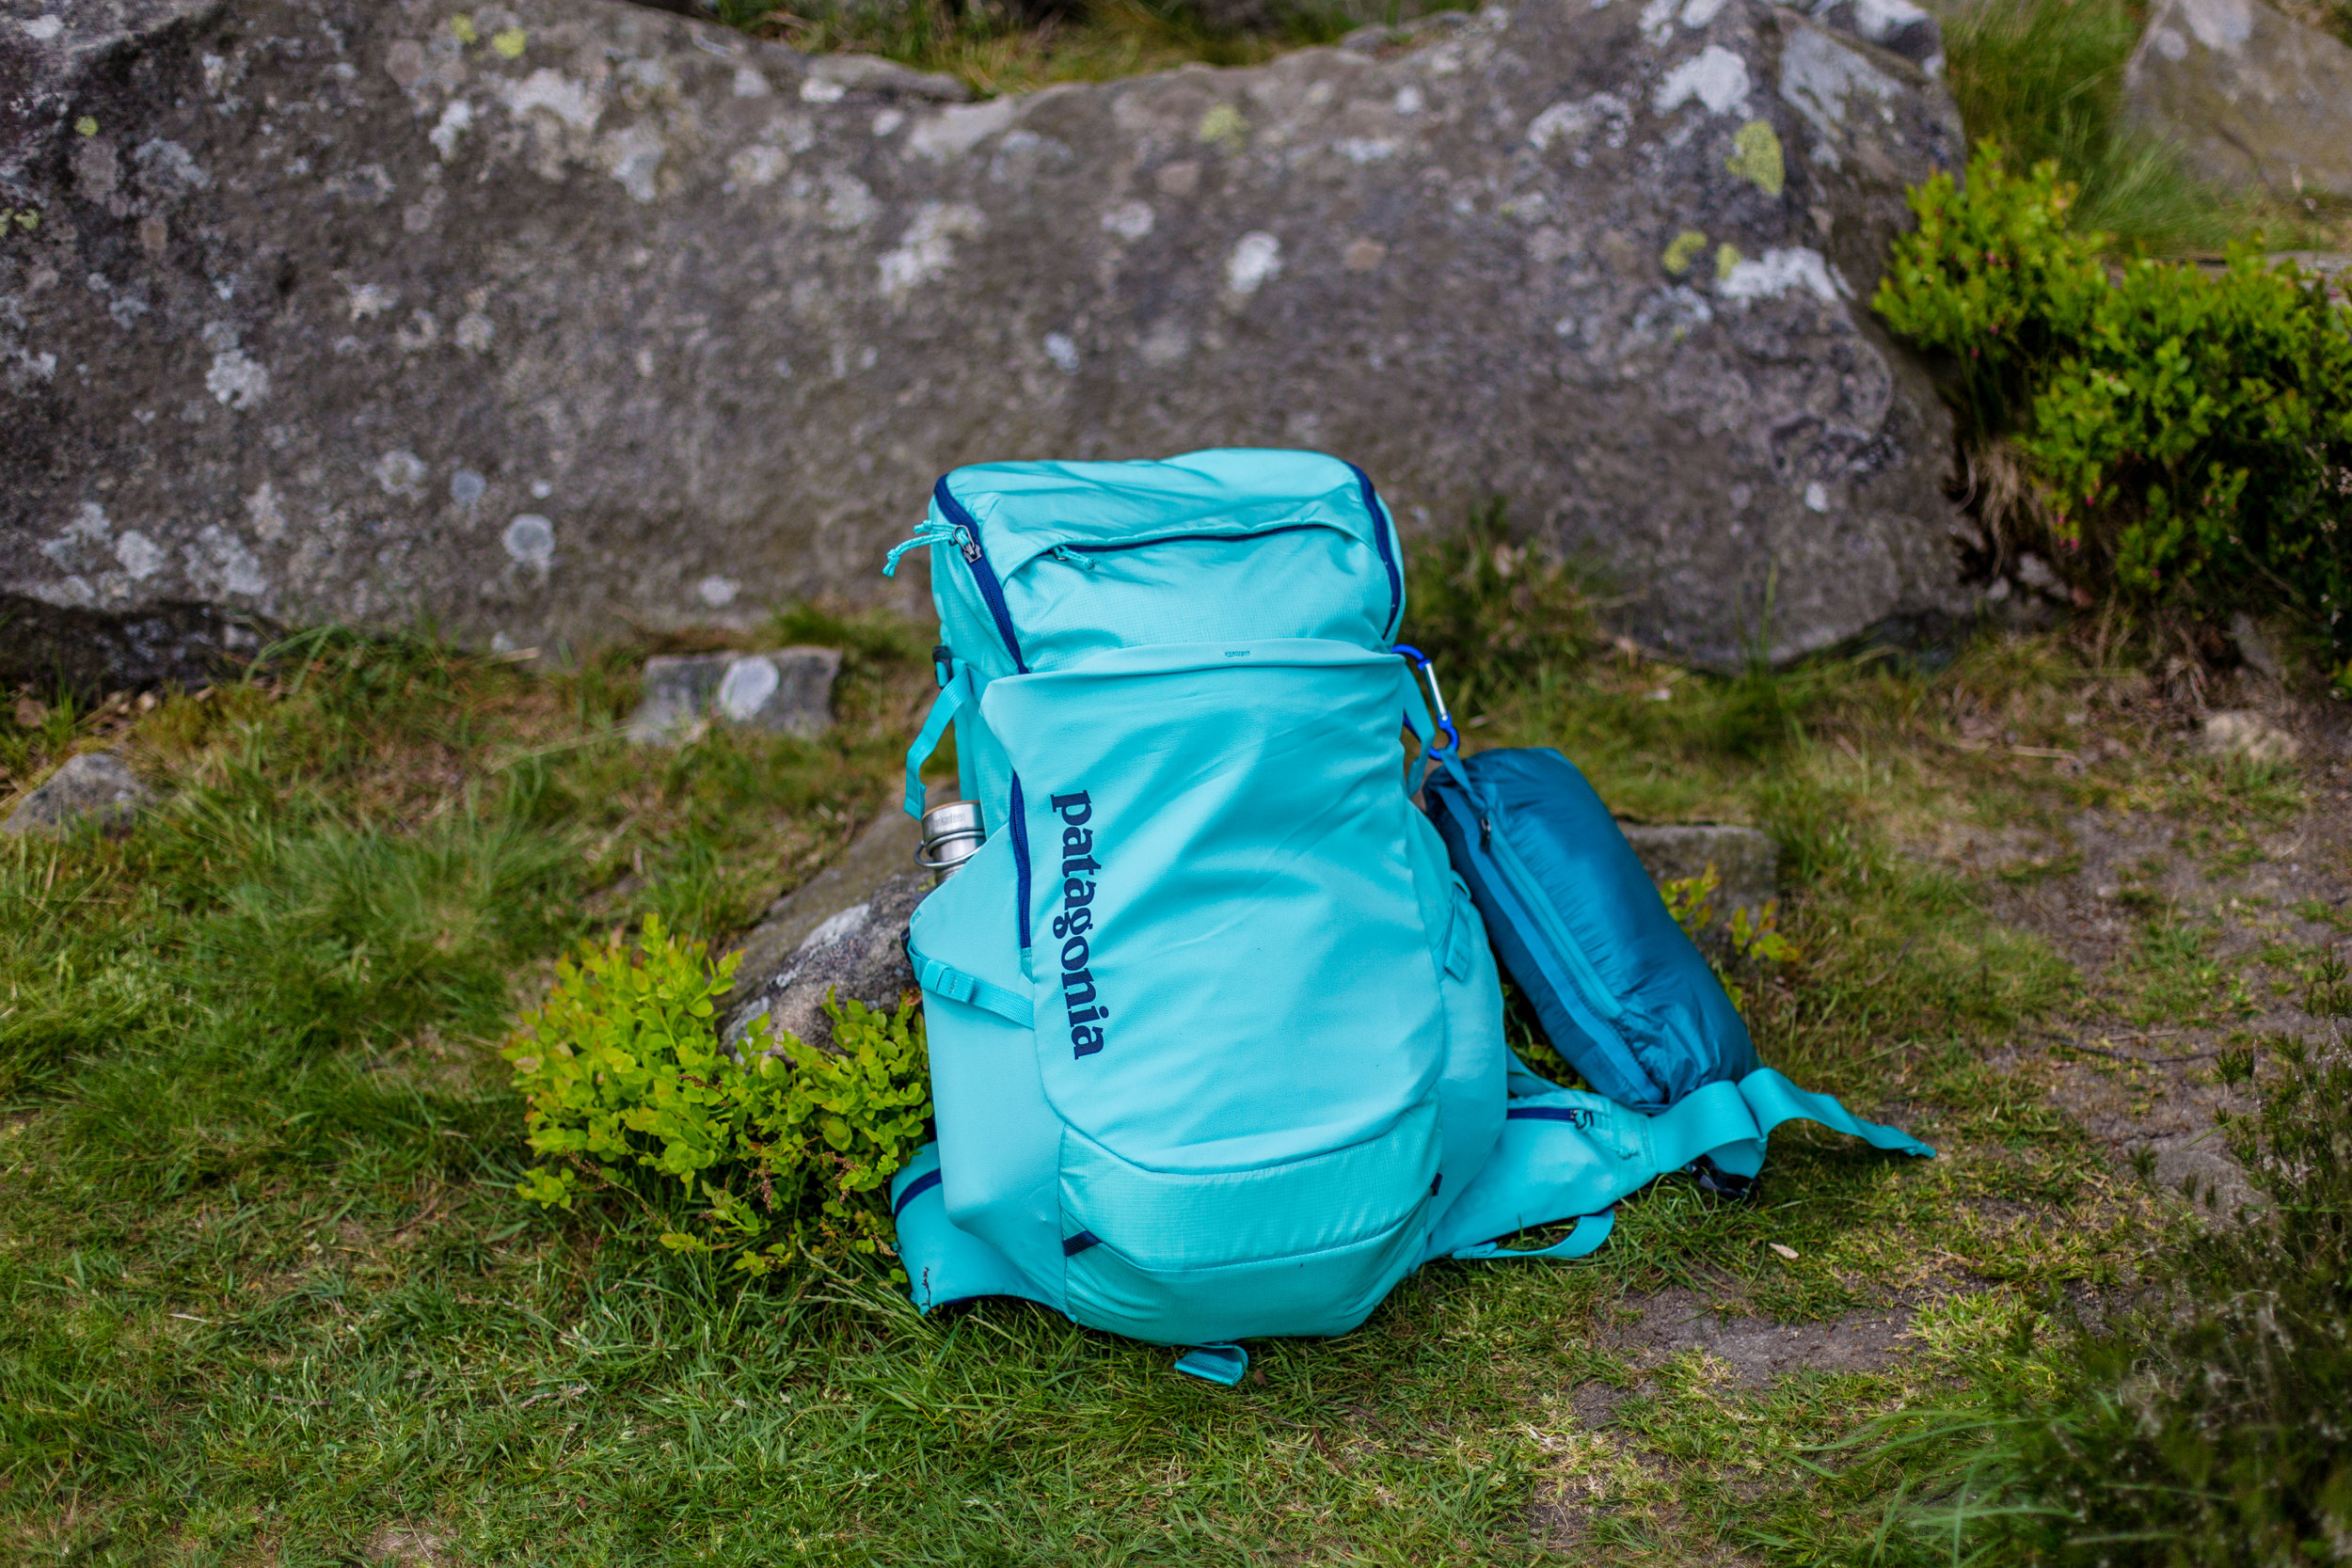 The 26L Nine Trails Pack with my Micro-puff hung on the side